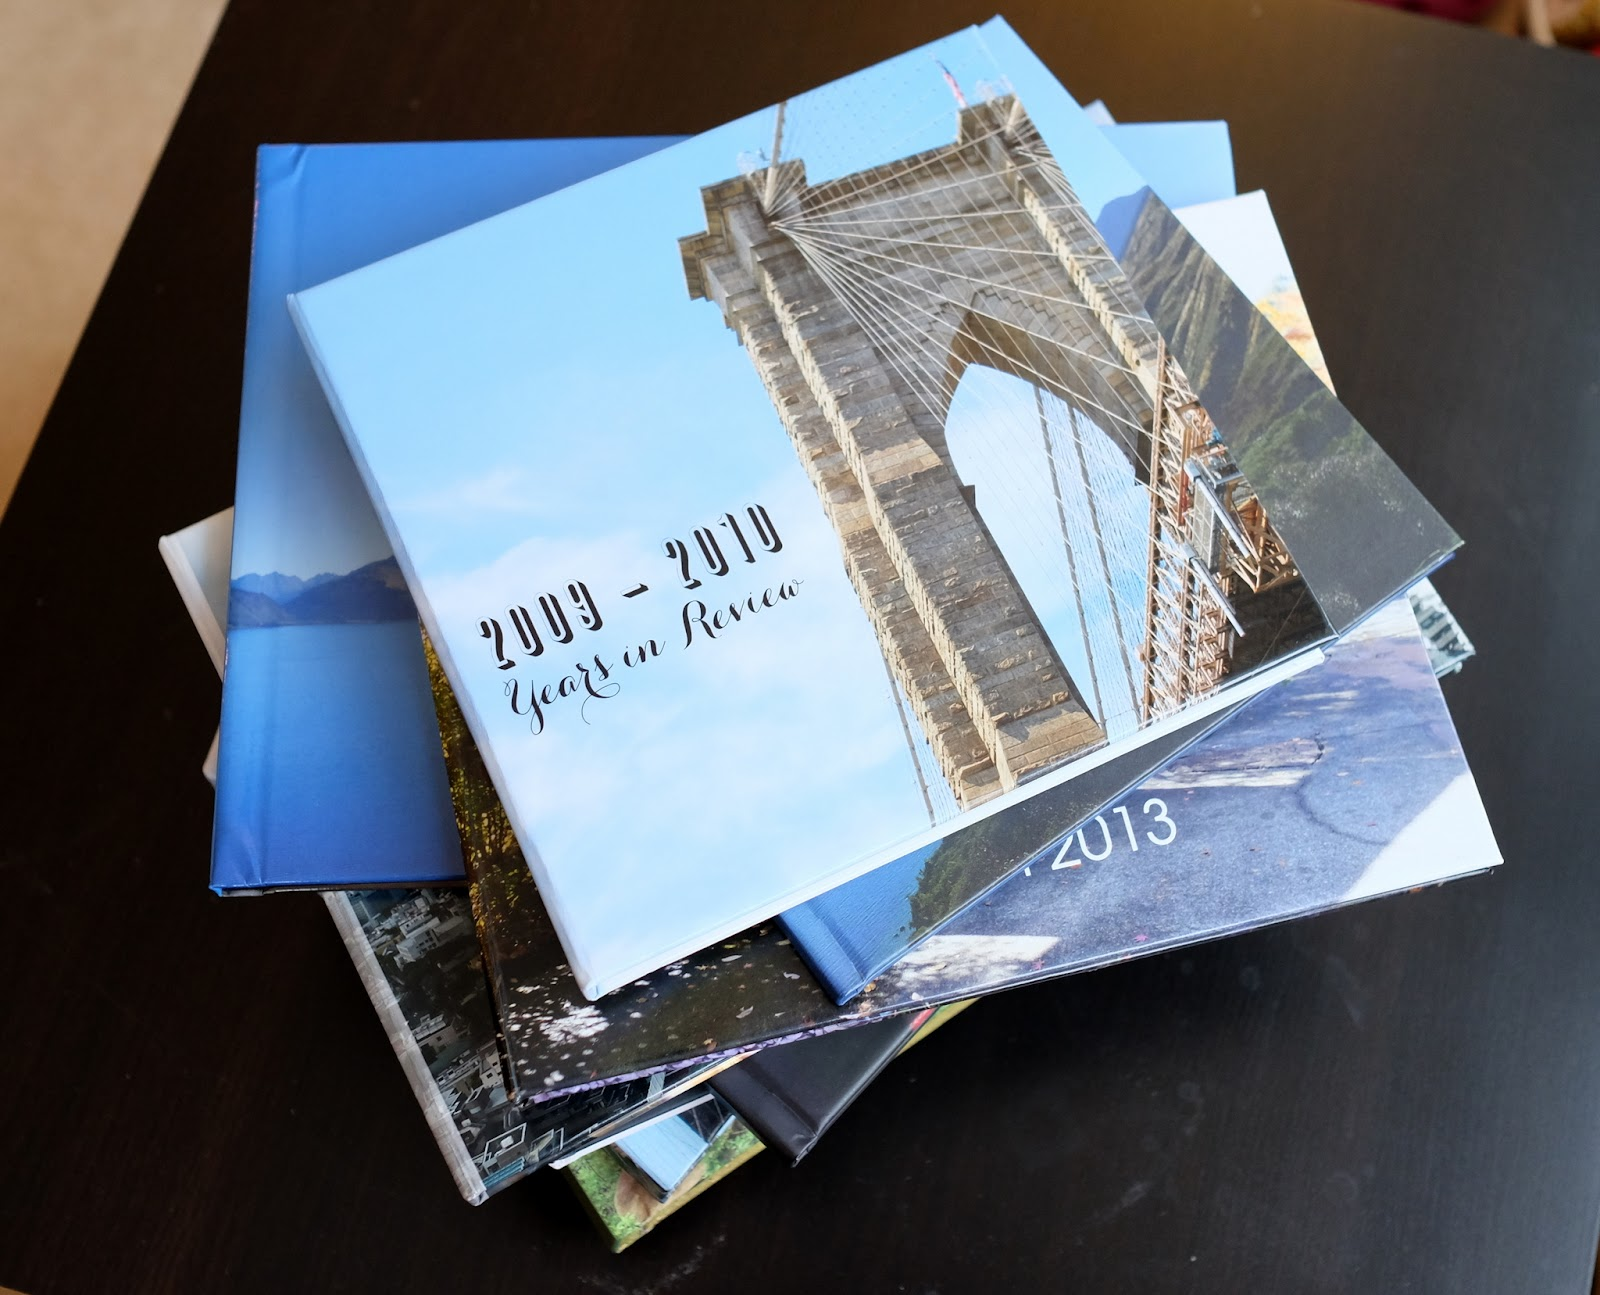 Where can I print a photobook on cardstock-like pages?